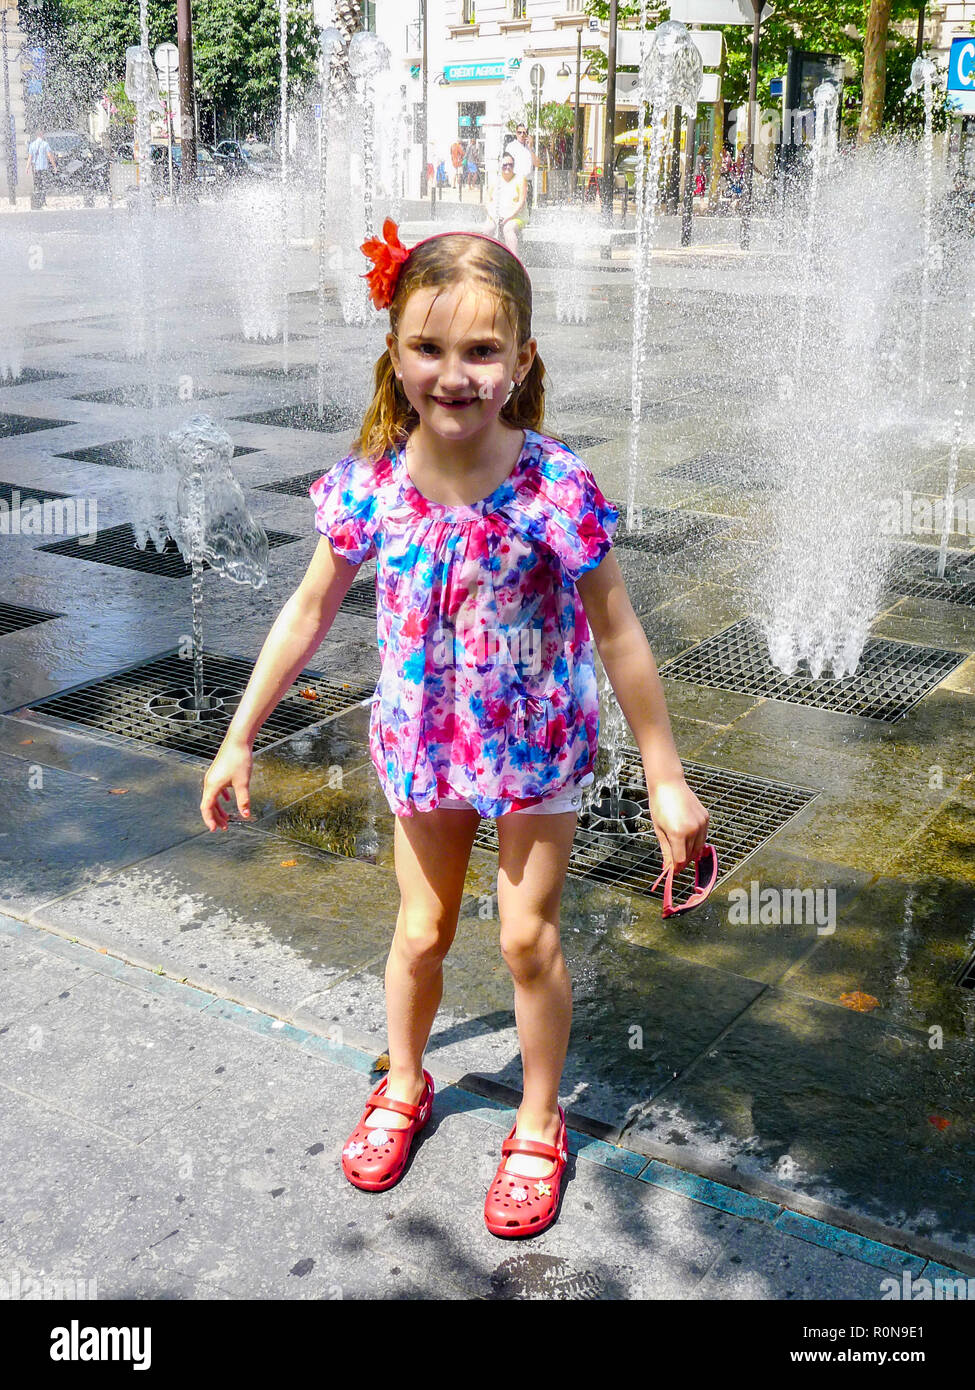 Kid Child soaked, soaking wet, playing, water fountains, water mirror Place Masséna, Nice, Cote d´Azur, France, childhood concept, time of her life - Stock Image